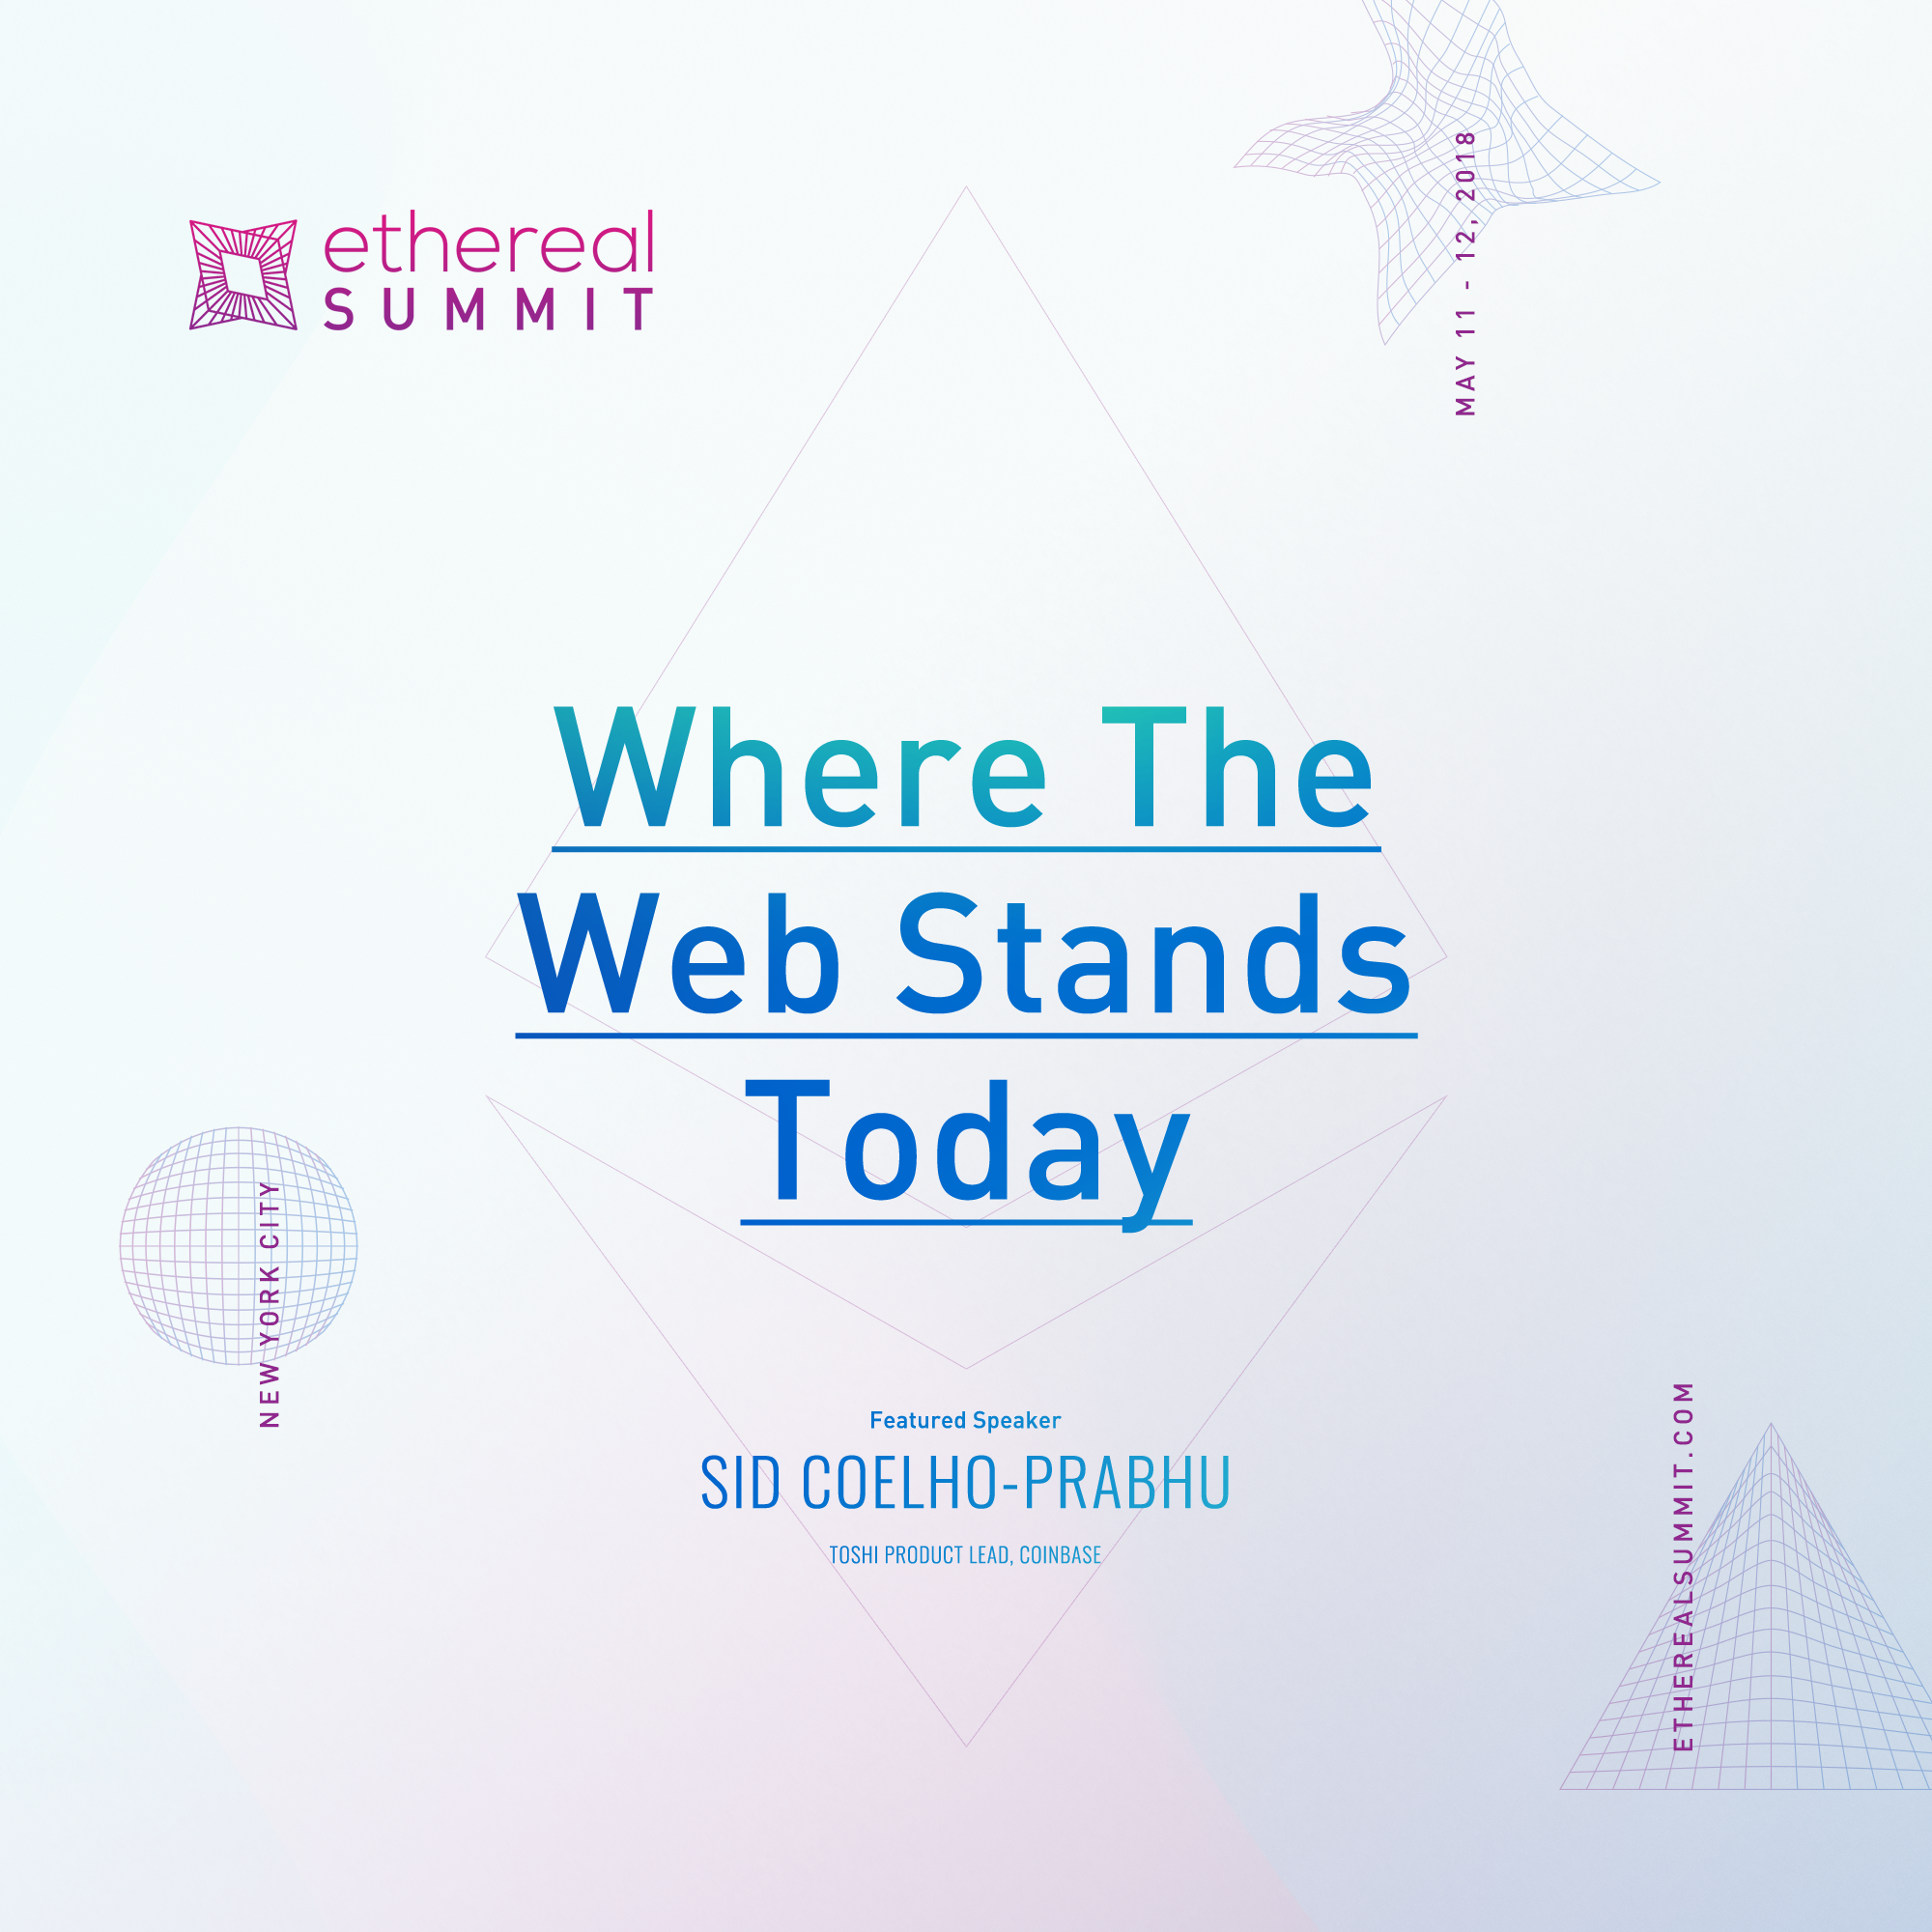 Where The Web Stands Today